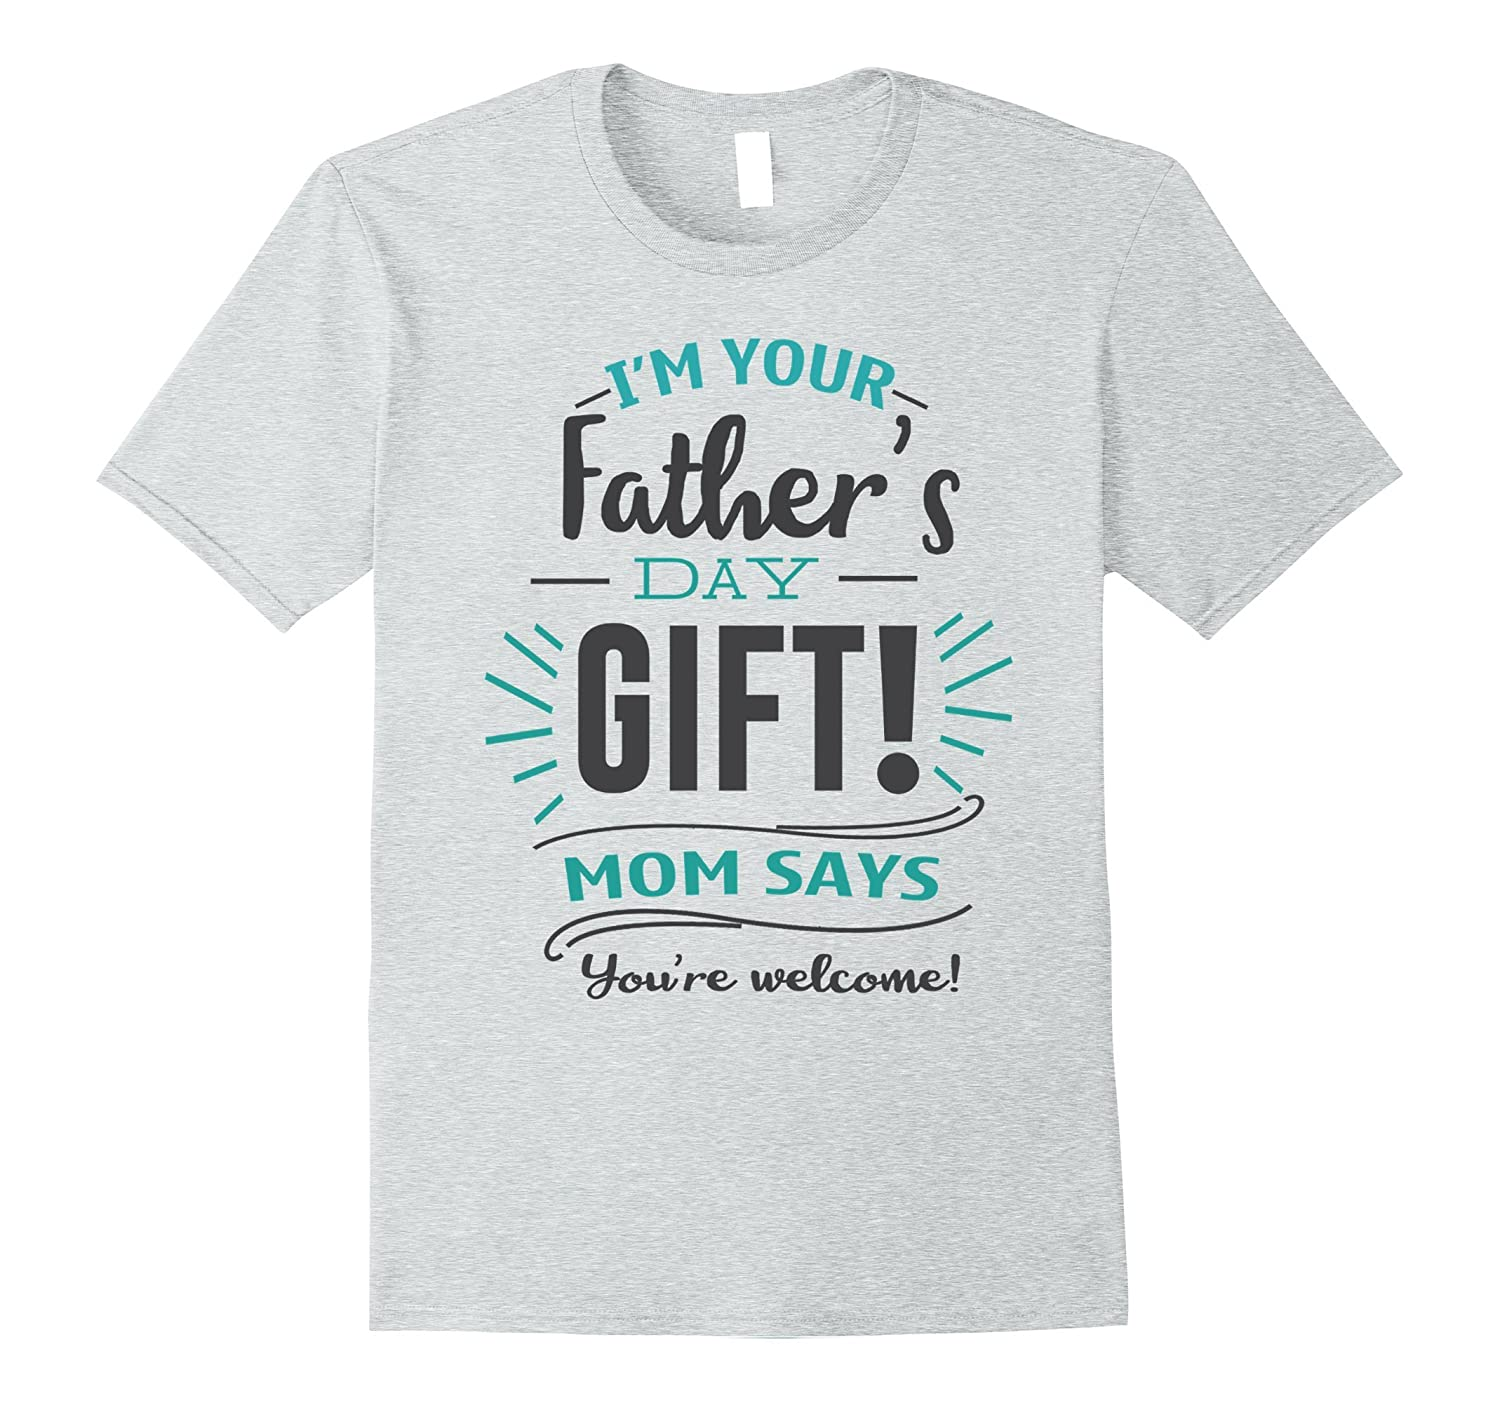 6c0fbdc1 I'm your father's day gift Mom says you're welcome-4LVS – 4loveshirt